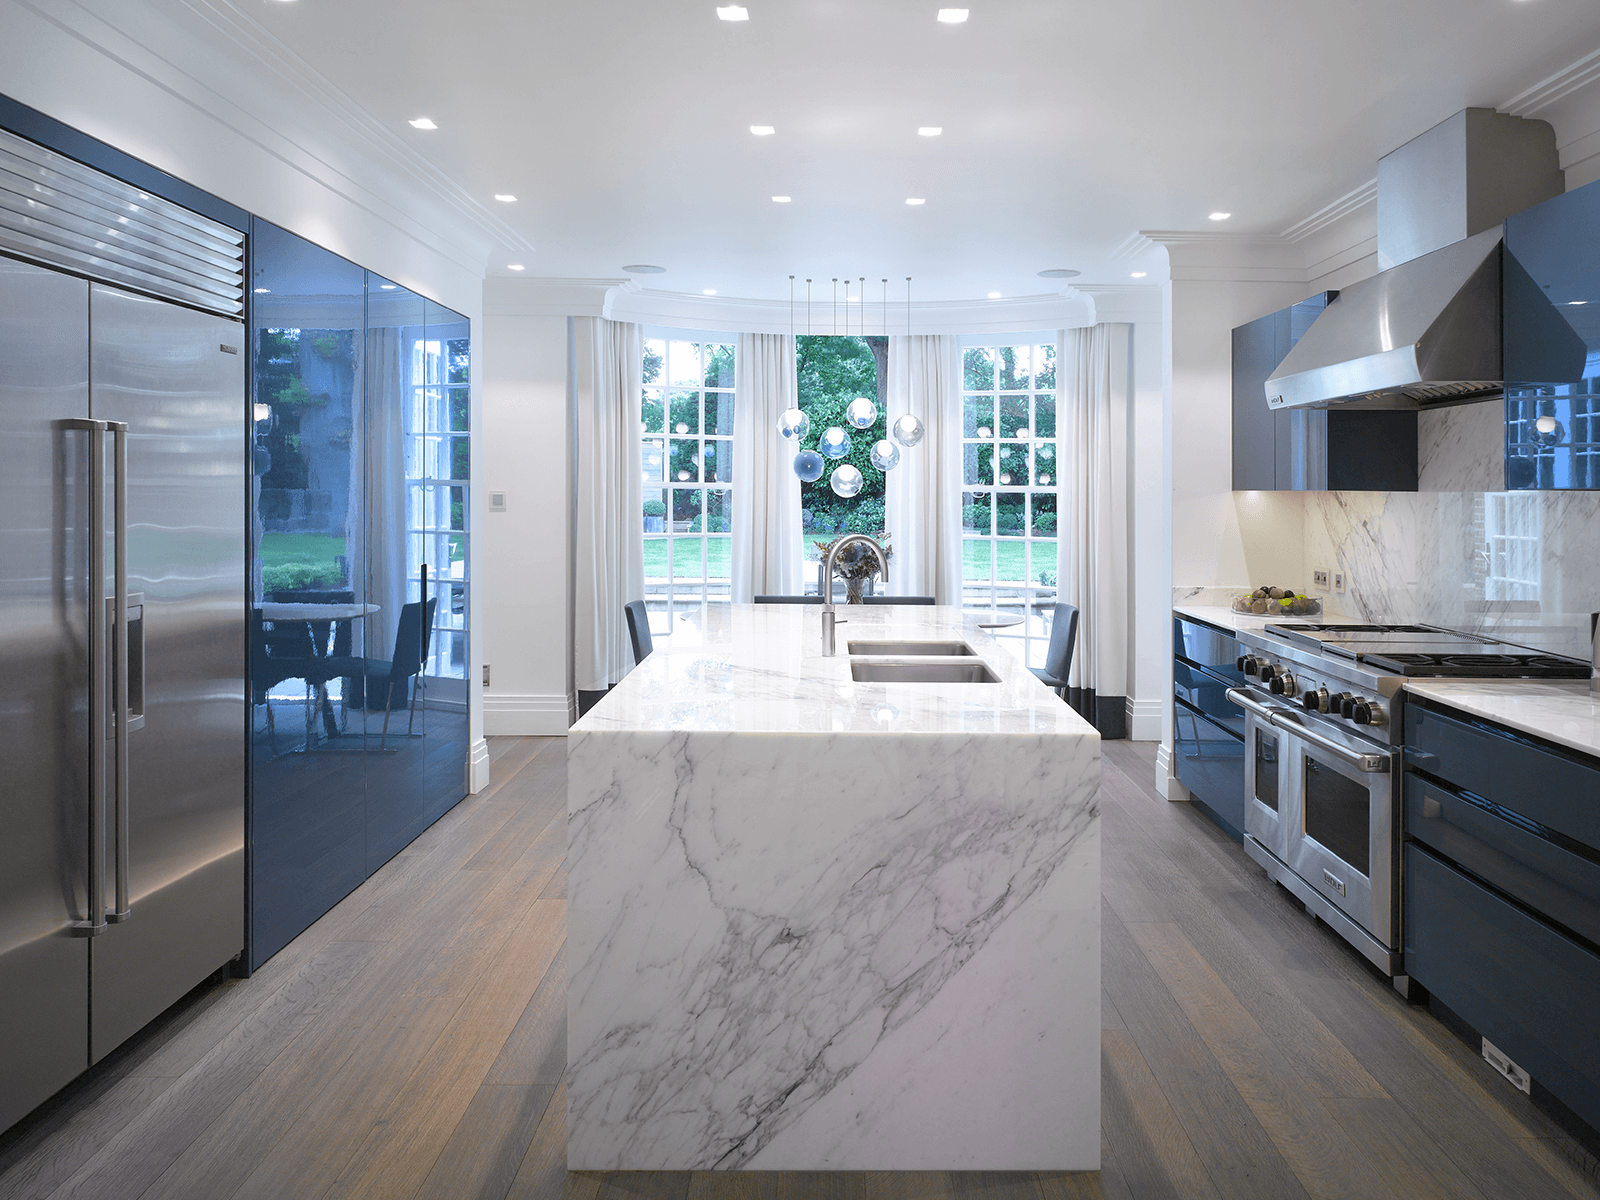 Waxley: A High Gloss Blue & White Kitchen from Roundhouse Design ...